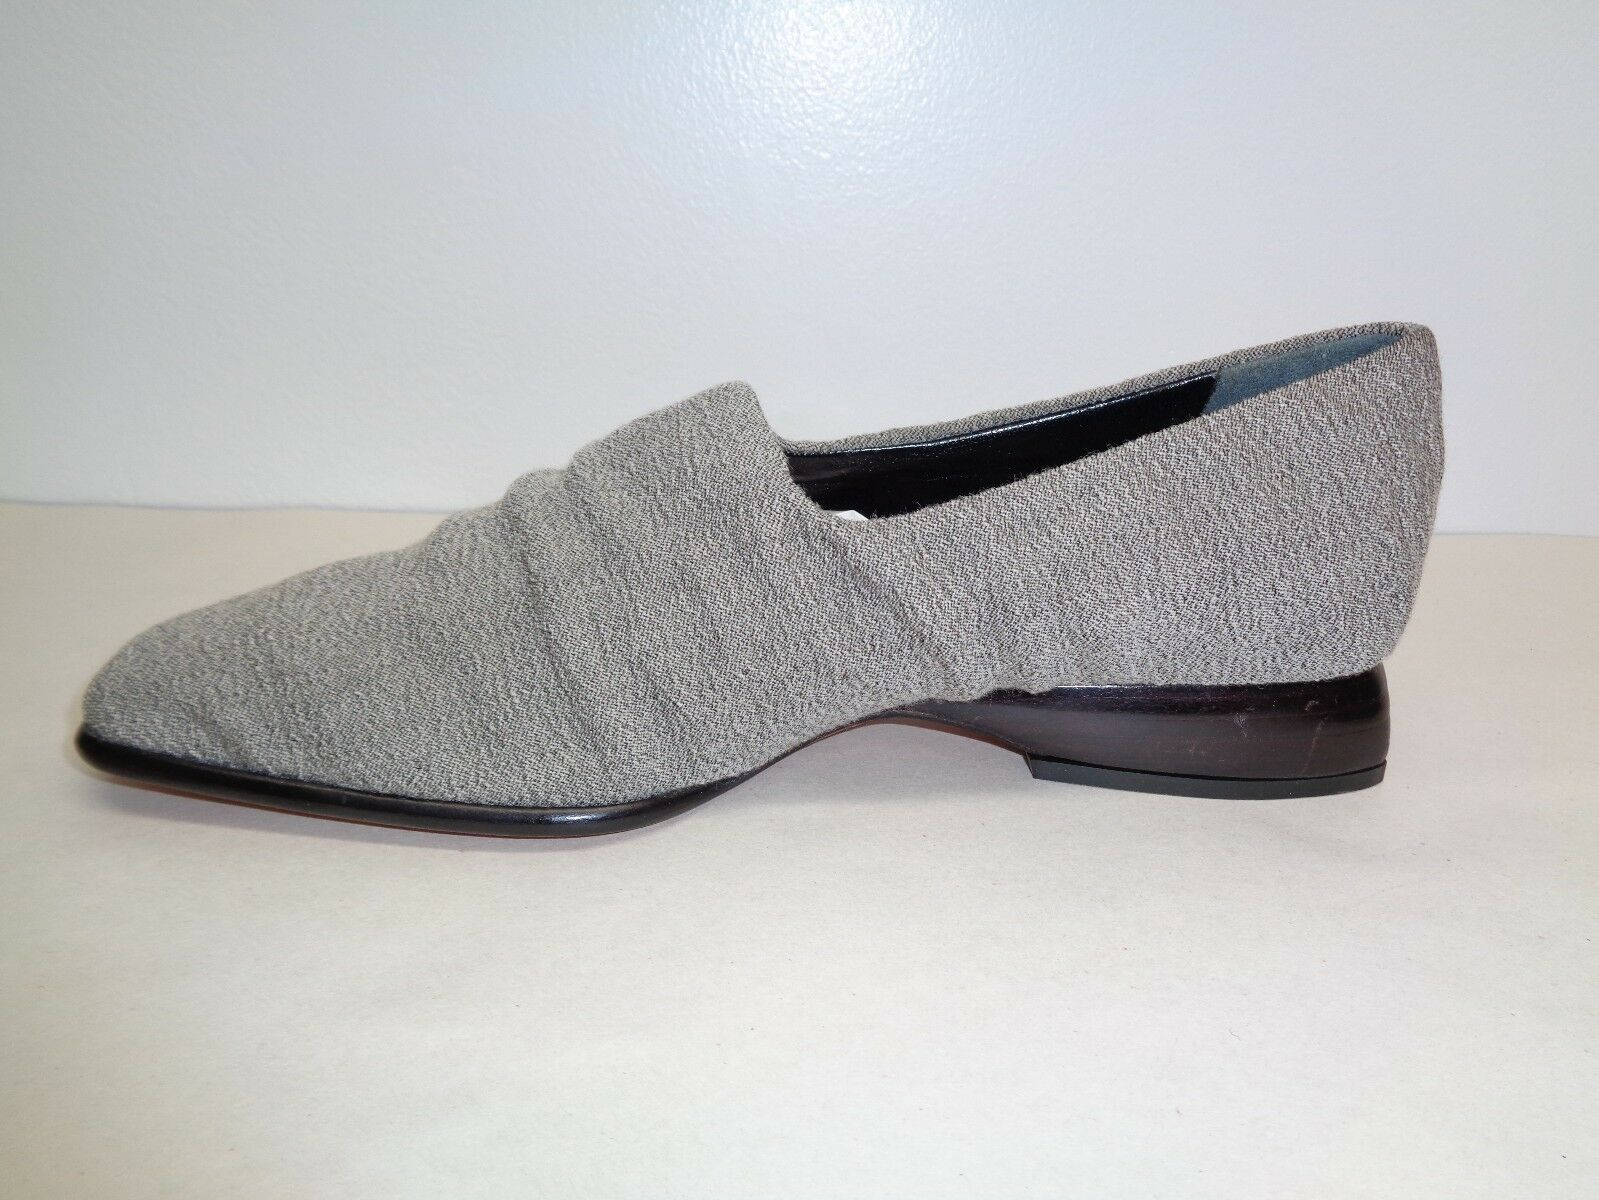 Pancaldi Größe 6 New M P9574 Gray Fabric Heels Pumps New 6 Damenschuhe Schuhes d66270